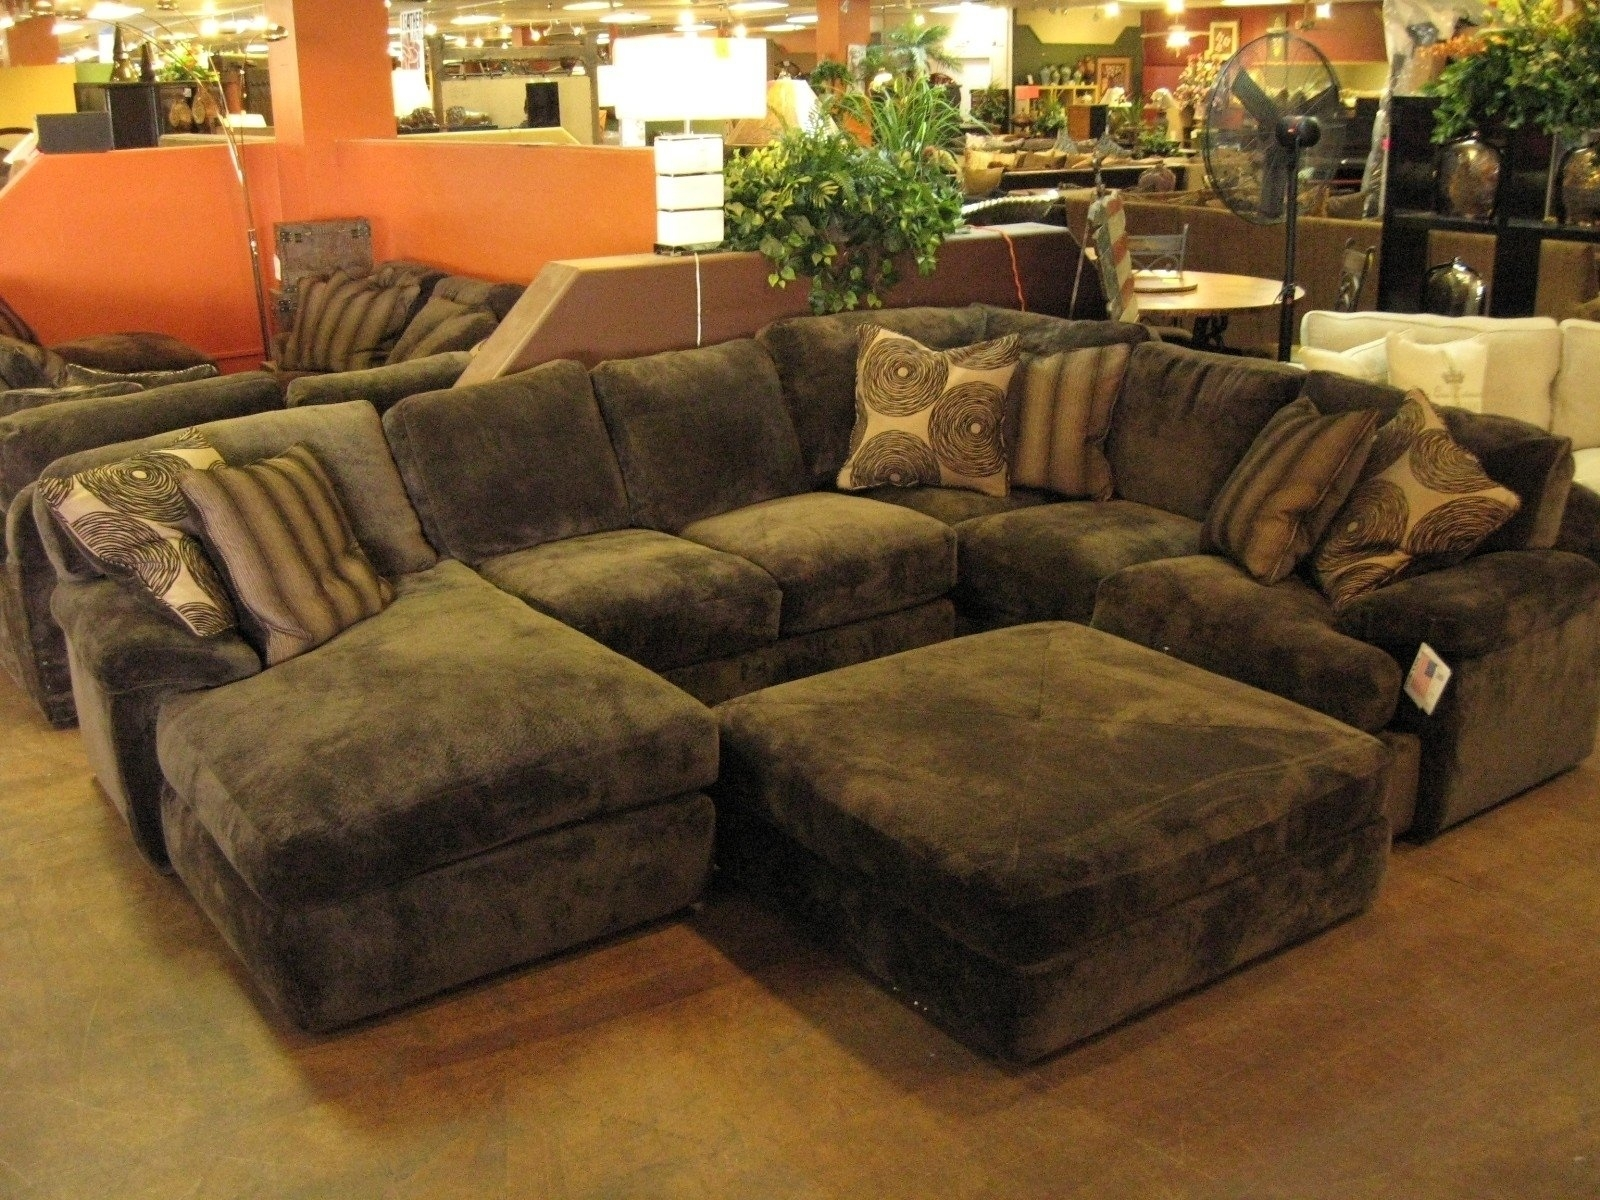 Interior Luxury Oversized Sectional Sofa For Awesome Living Room throughout Oversized Sectional Sofas (Image 5 of 10)